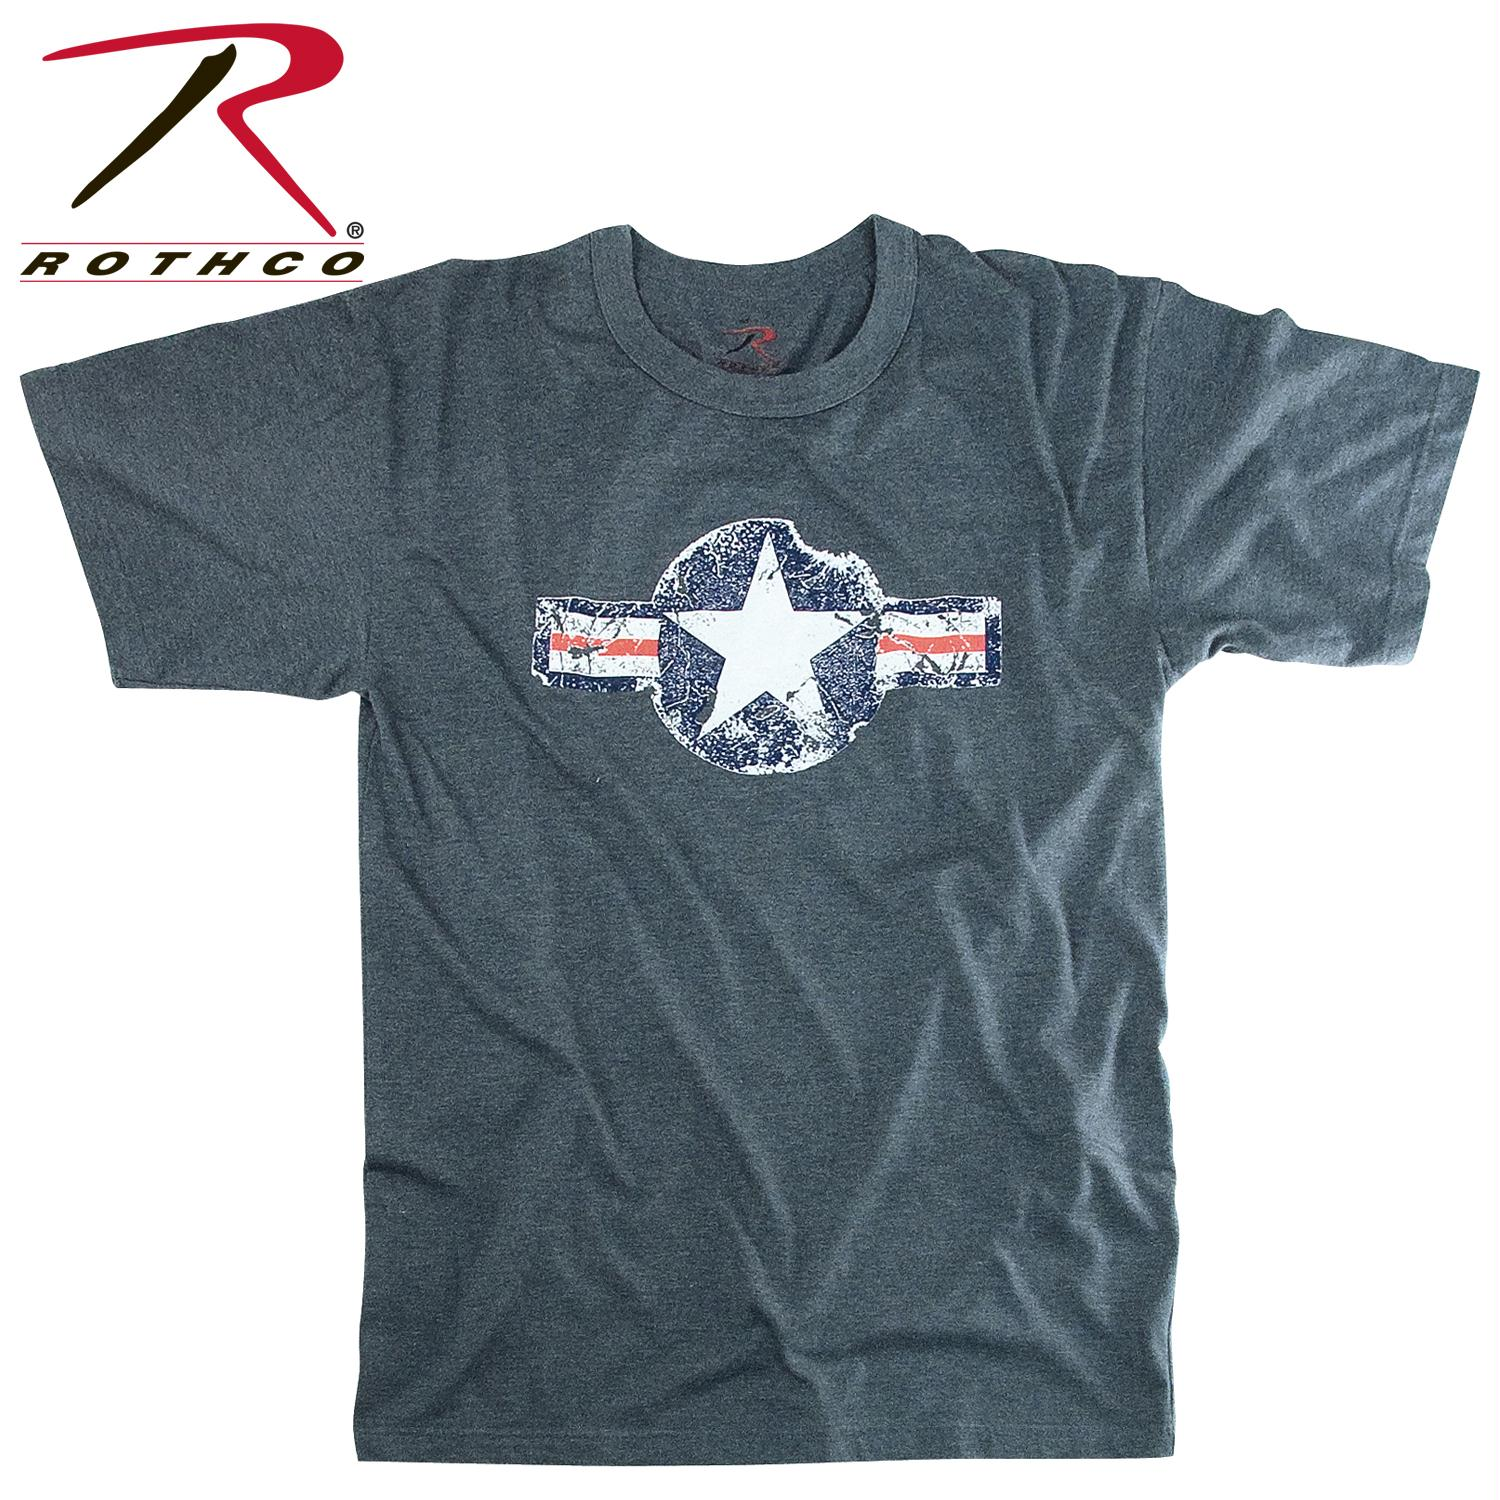 Rothco Vintage Army Air Corps T-Shirt